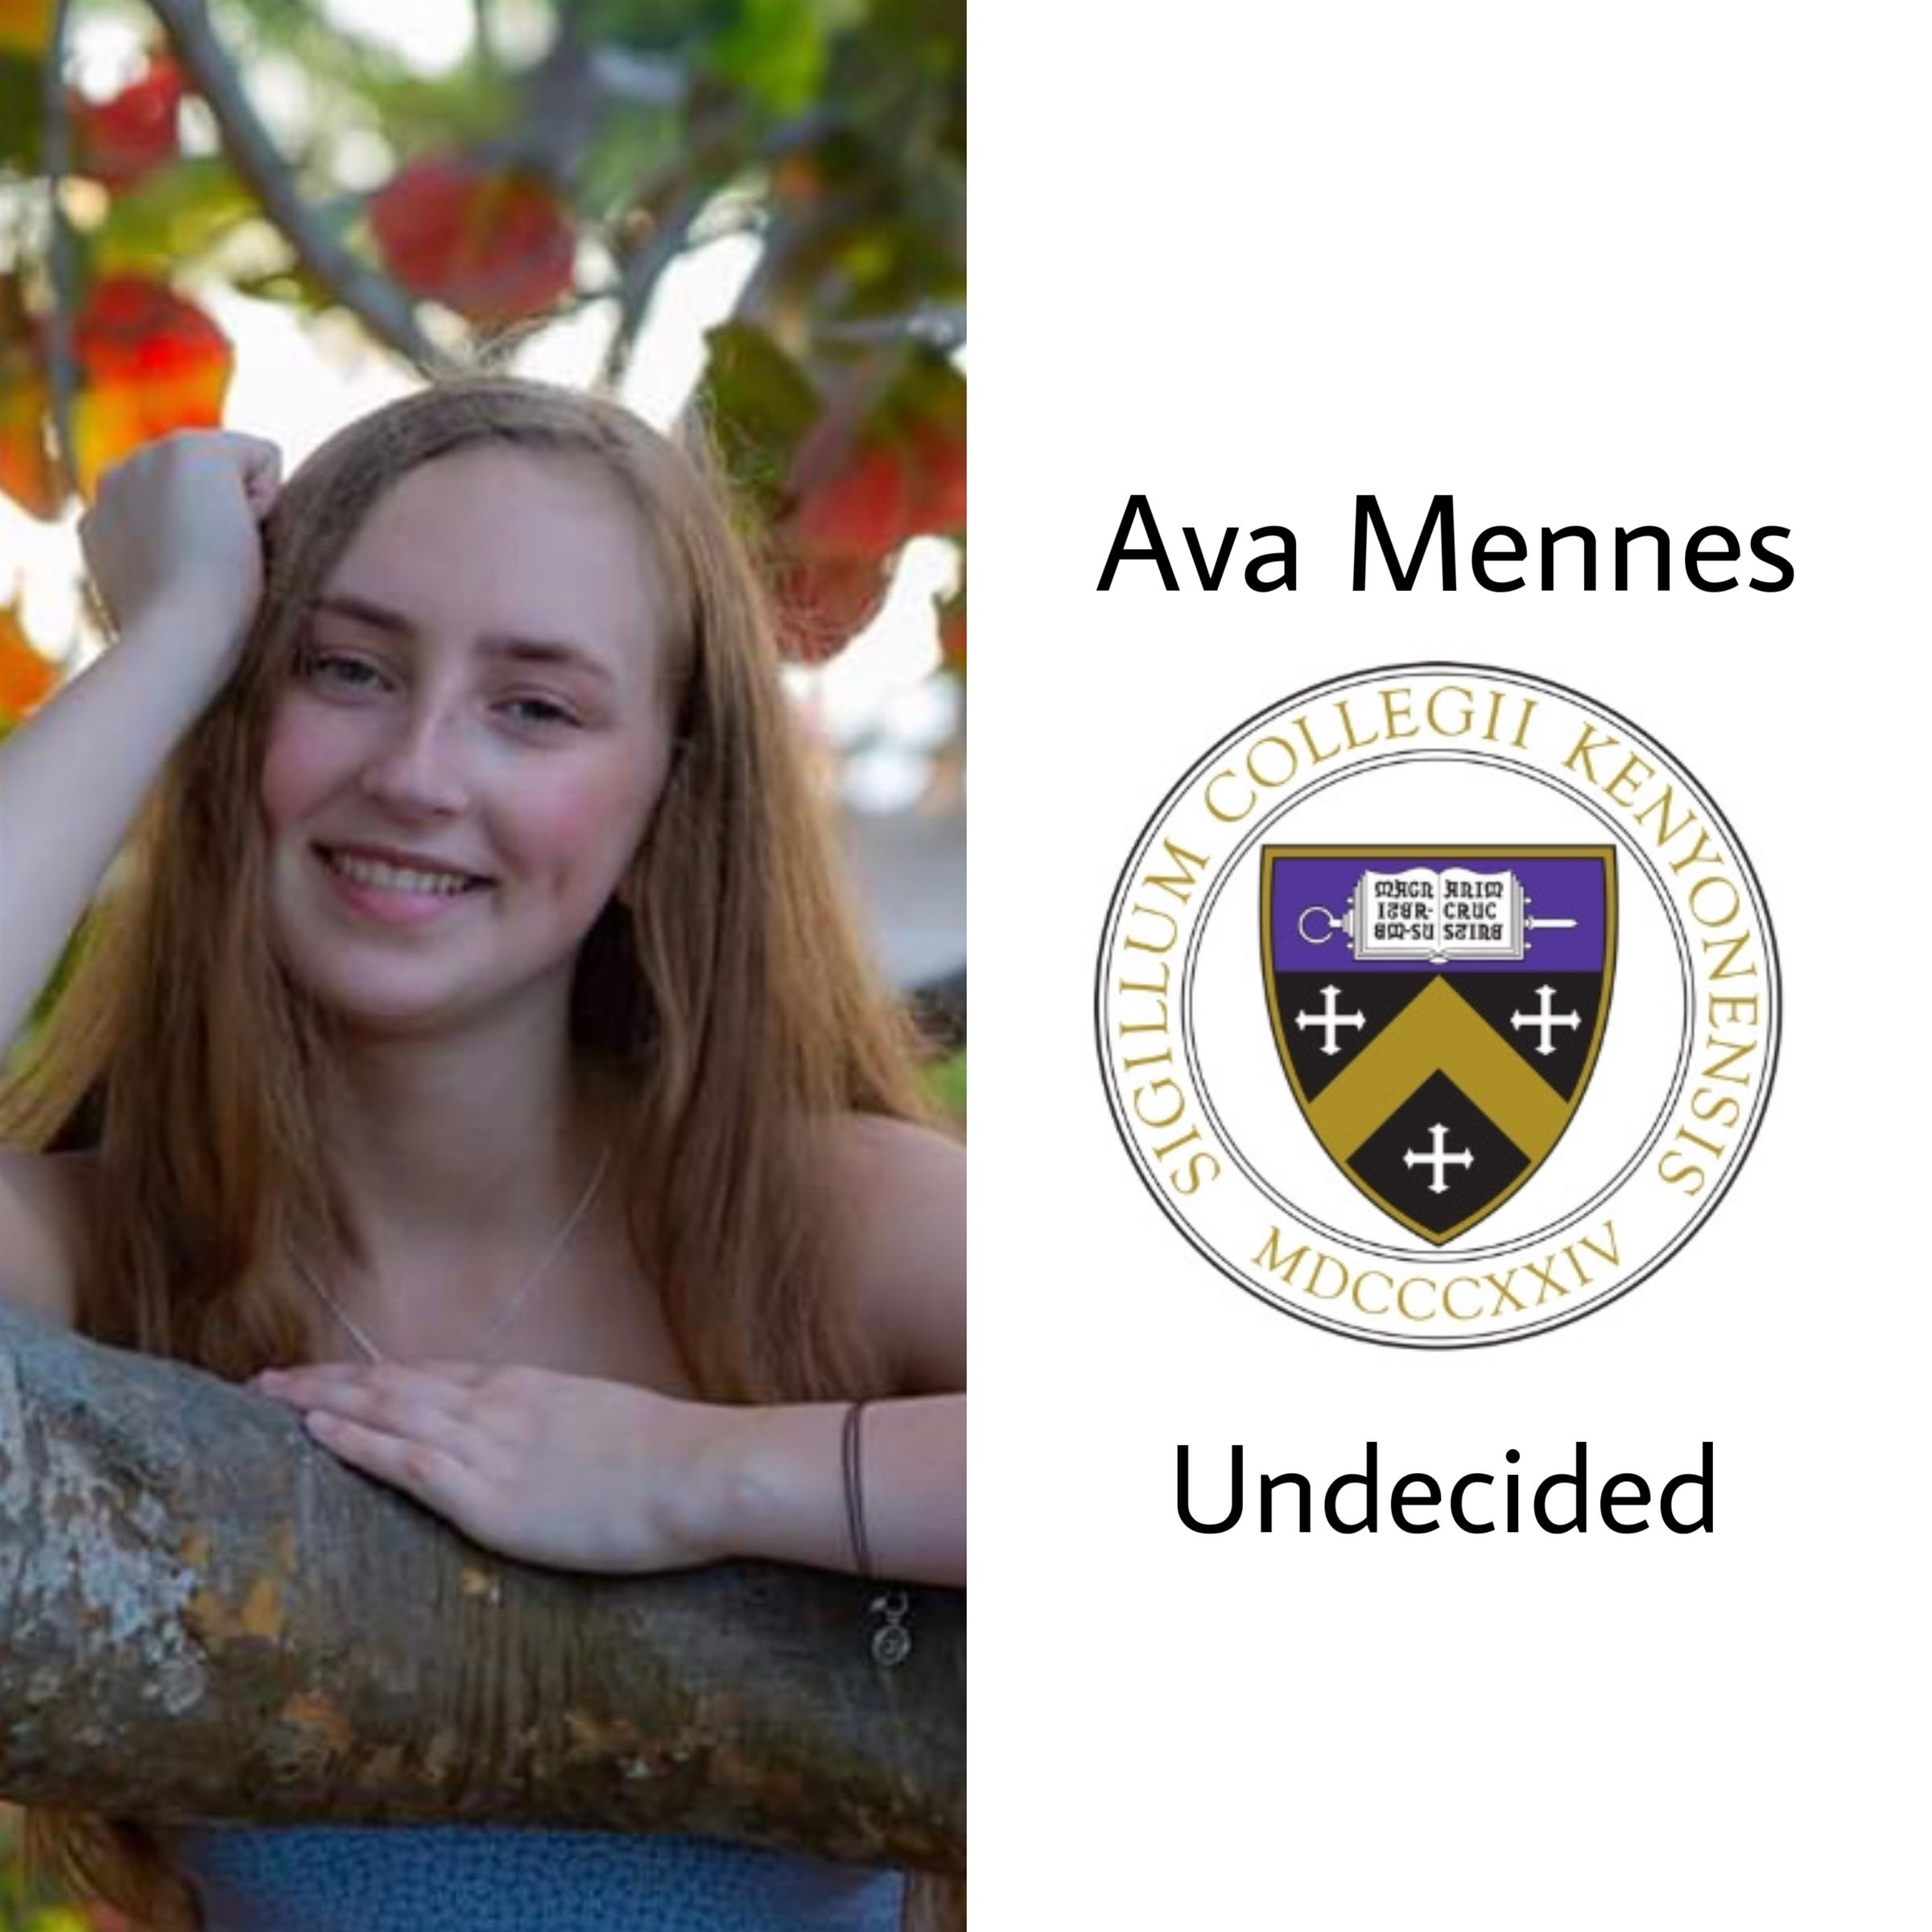 Another to Kenyon!!! So proud of Ava, she'll be headed to Kenyon next year undecided. Cannot wait to see everything you do!! Go Lords and Ladies